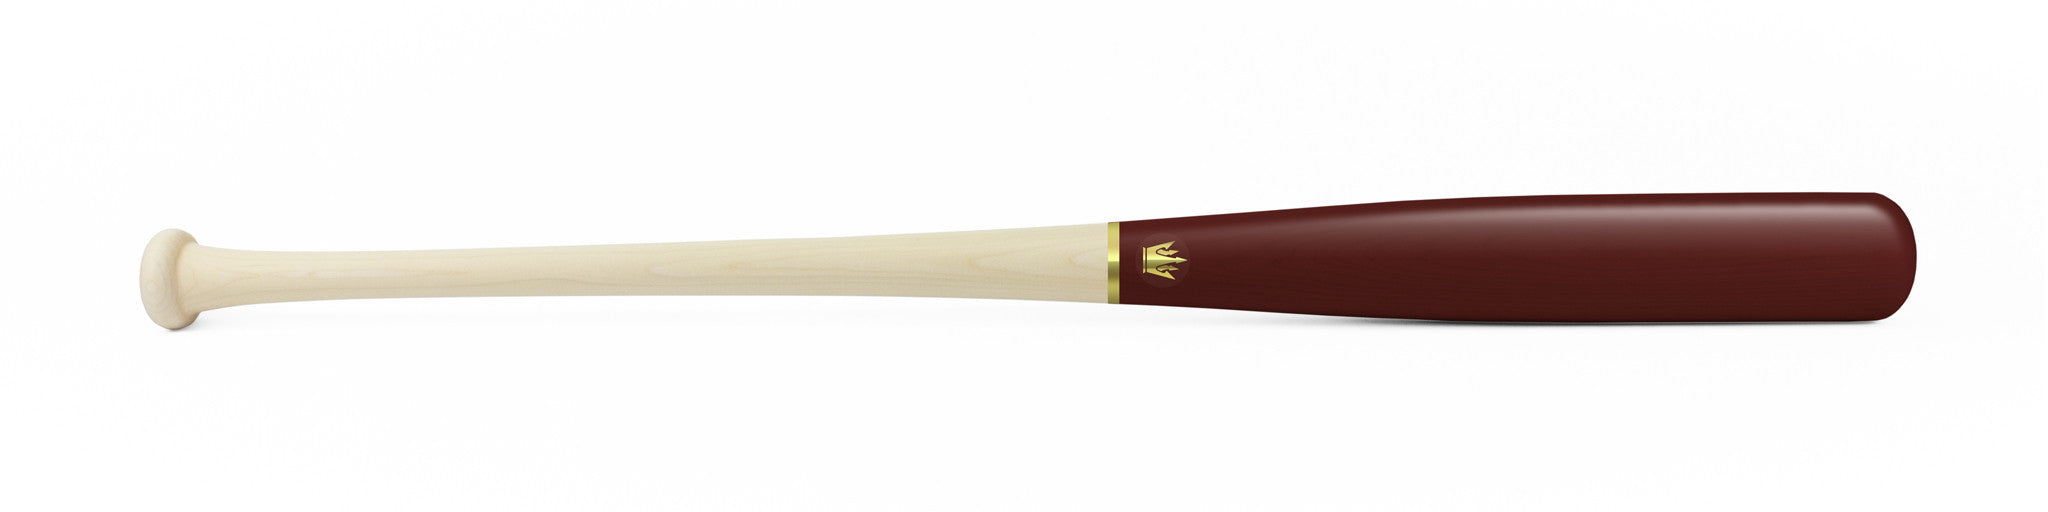 Wood bat - Maple model 318 Mahogany Standard - 3